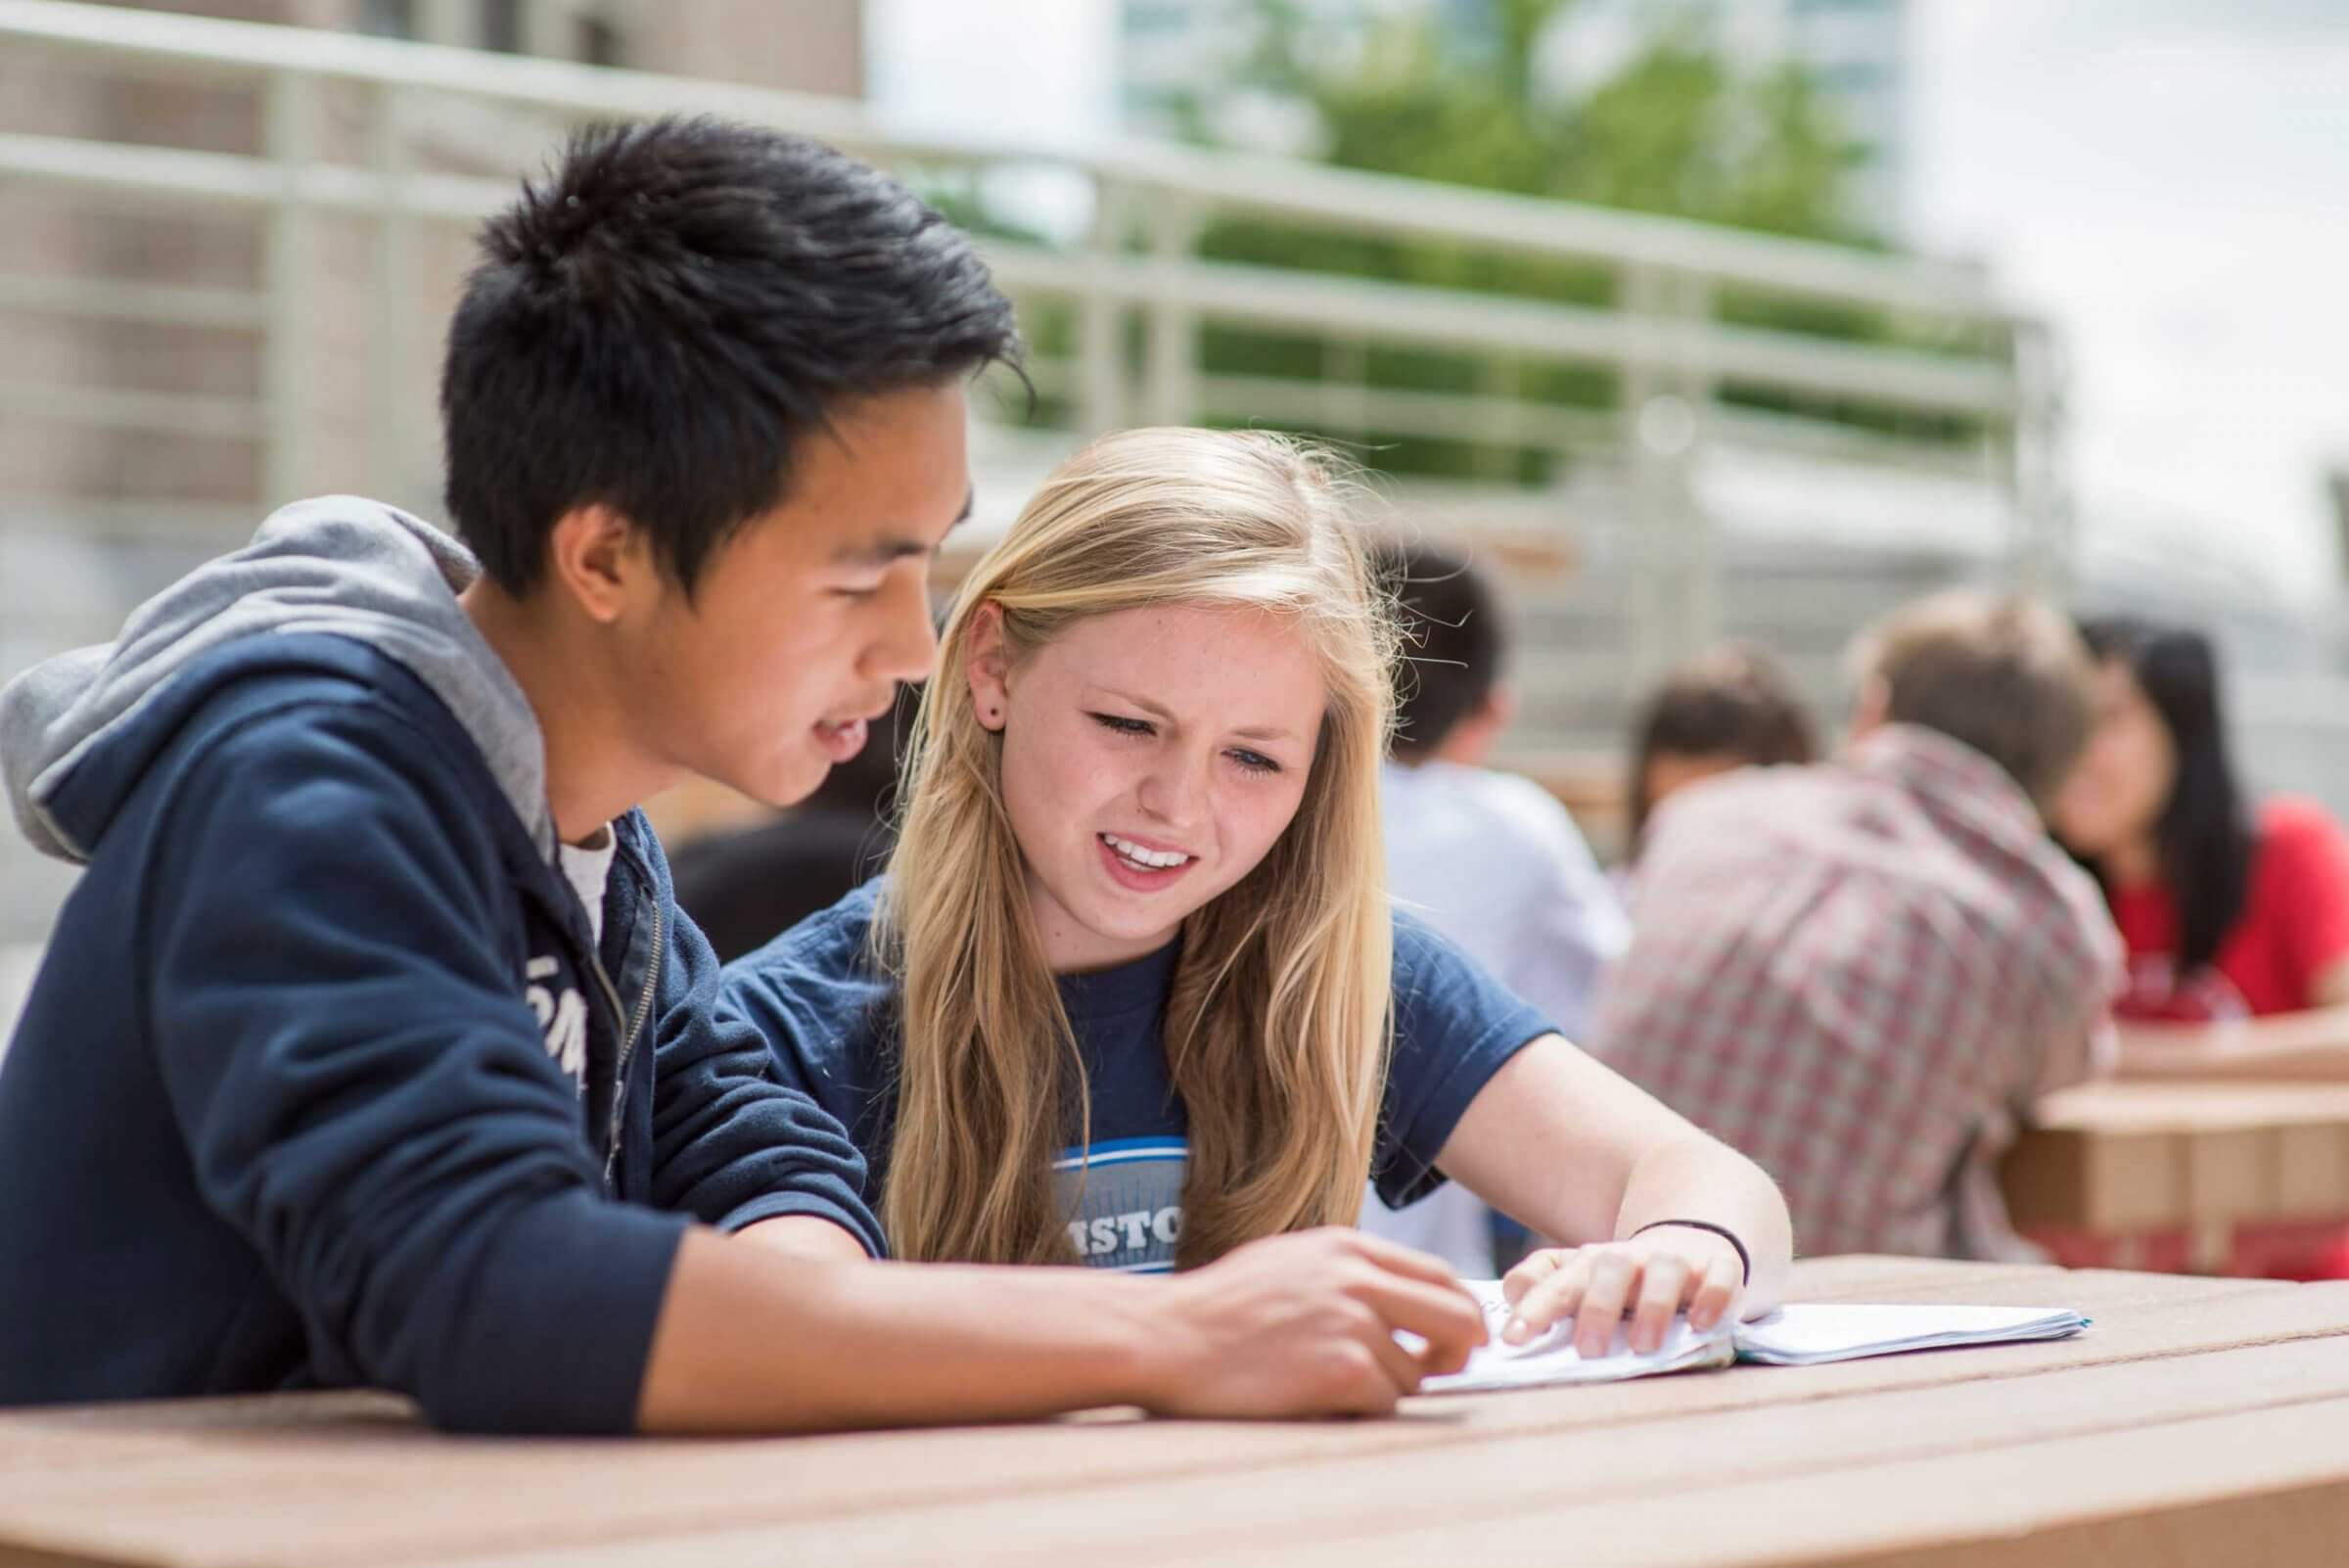 Two students sitting at a picnic table looking at a notebook together.